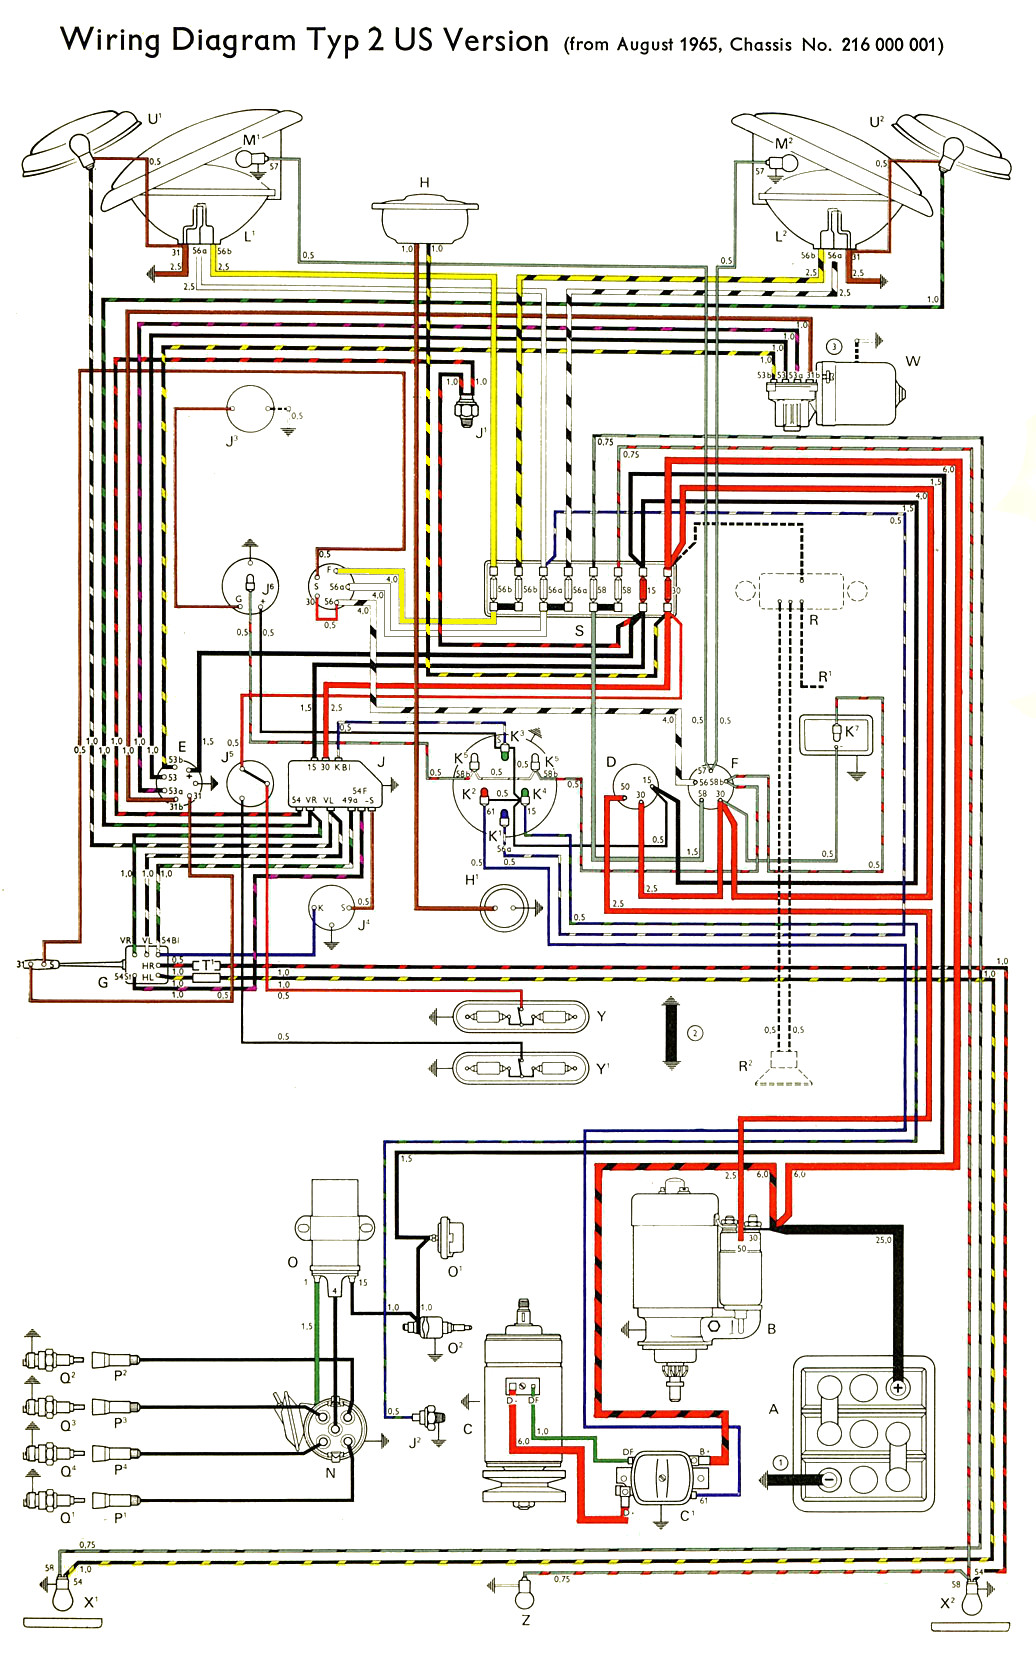 bus_66_USA thesamba com type 2 wiring diagrams mk3 golf wiring diagram at gsmx.co